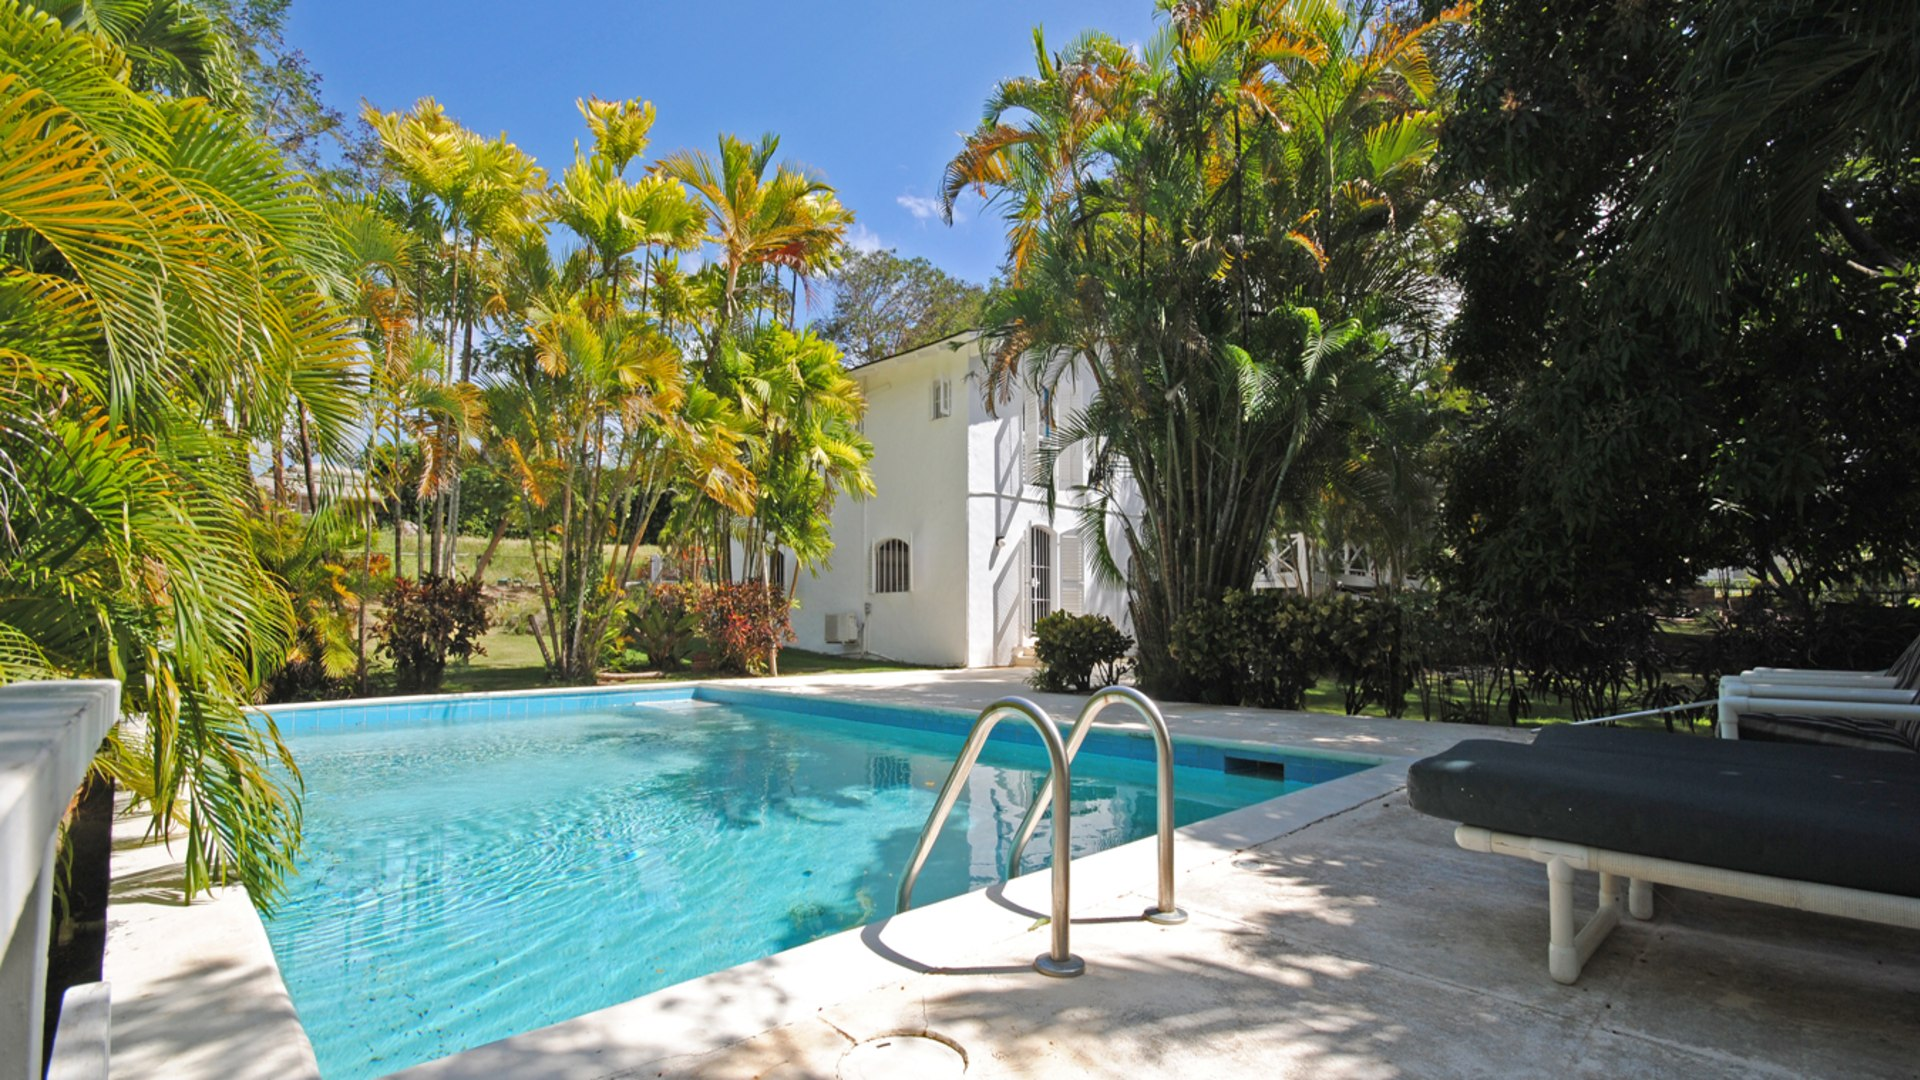 Glade House - House - Property for Sale in Barbados - Terra Luxury